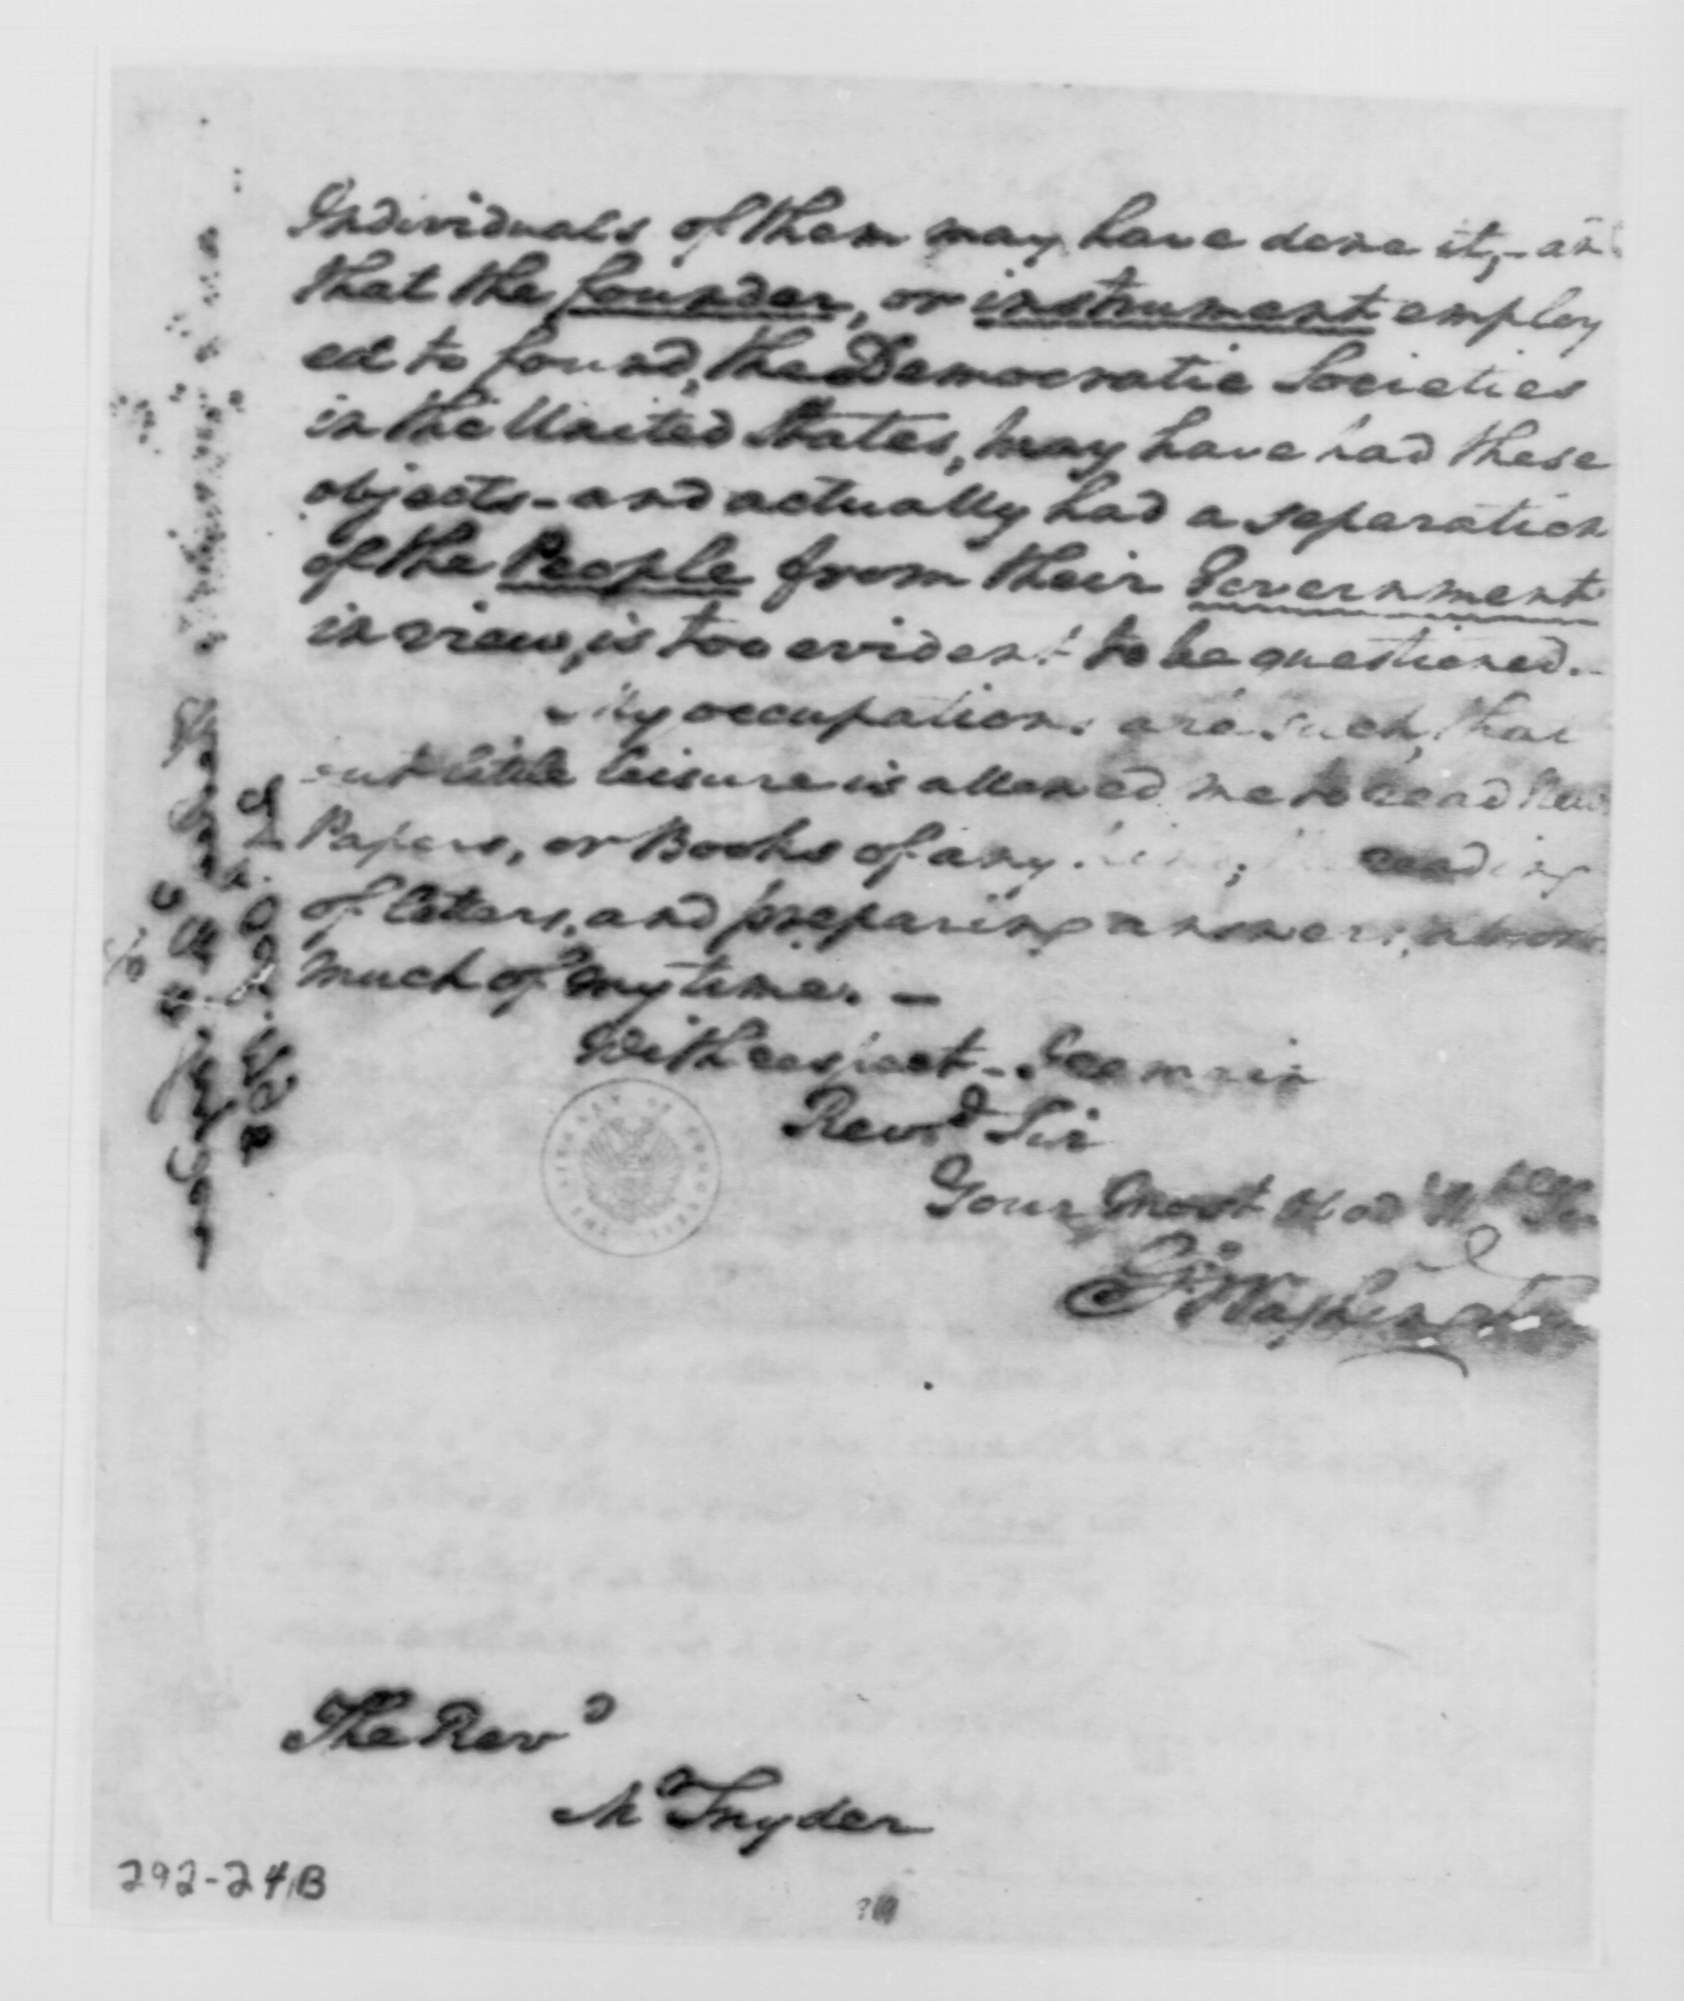 George Washington Illuminati Letter Oct 24th, 1798 - image 3 of 4